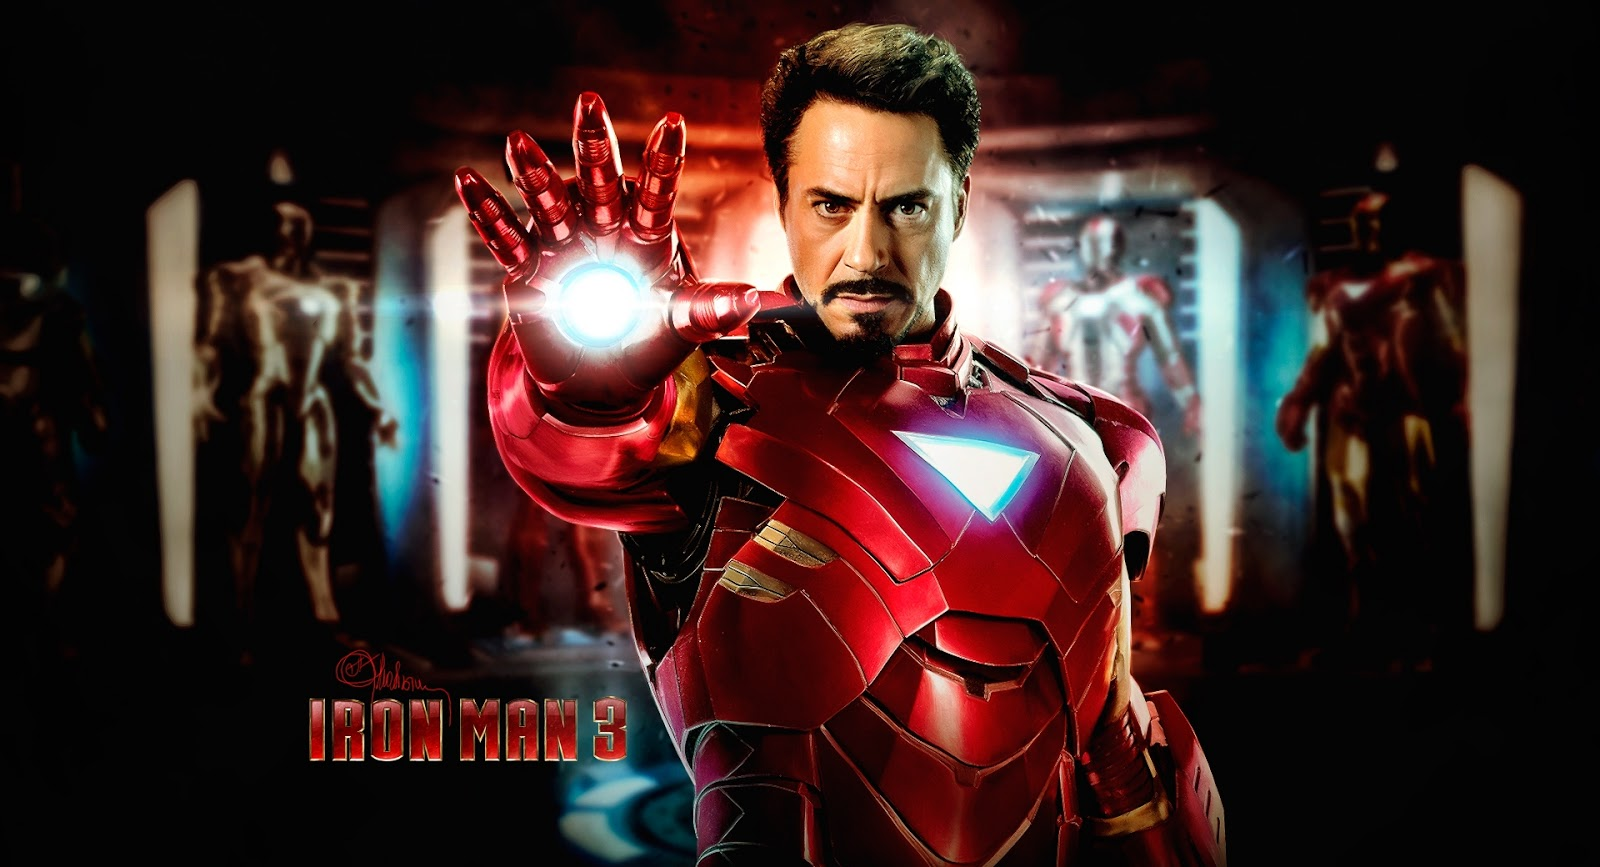 Pic Famina: Iron Man 3 Movie Hd Wallpapers